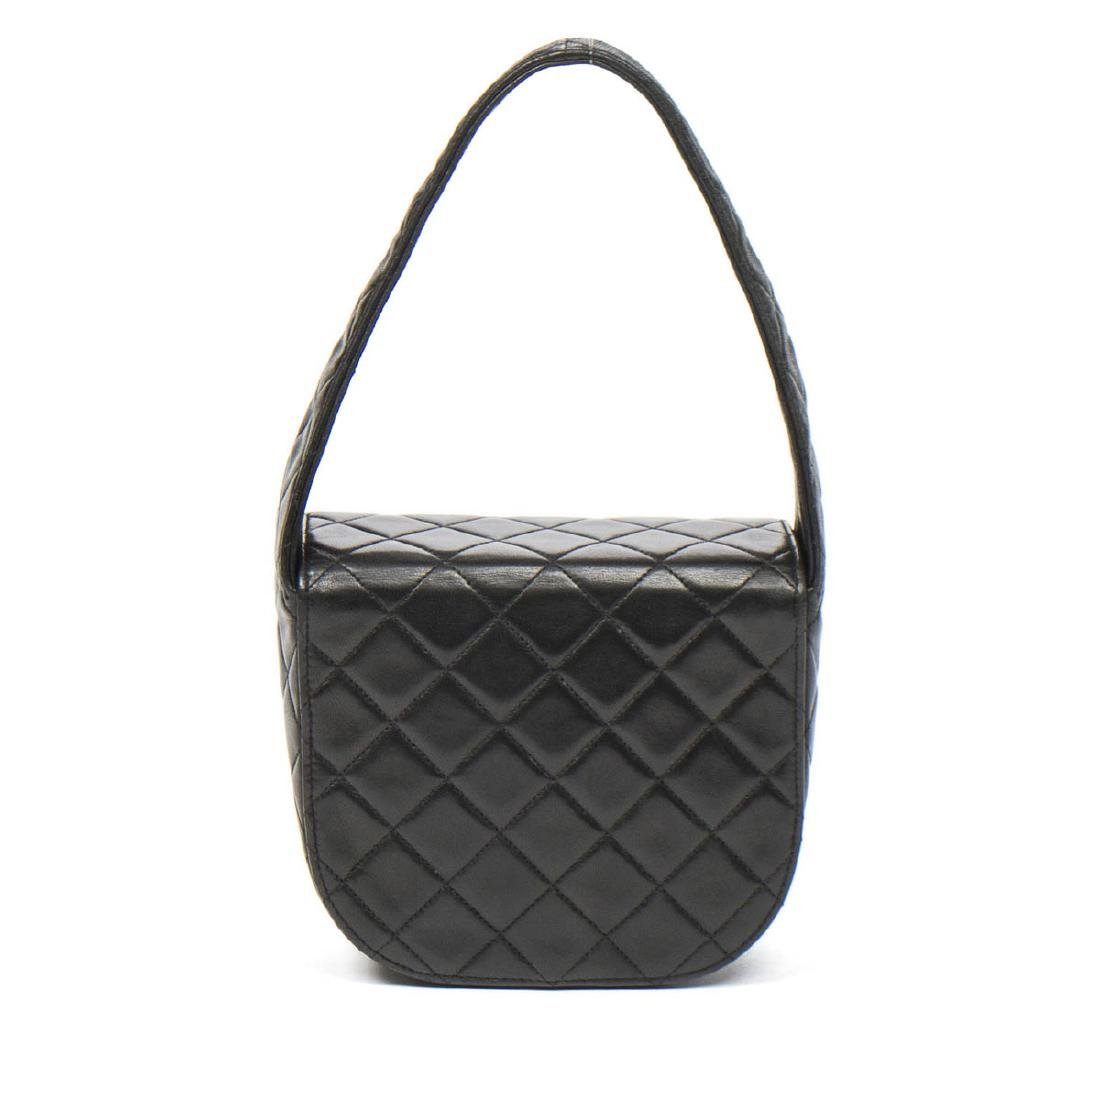 Chanel Make up Hand Bag in Black Quilted Leather - 5